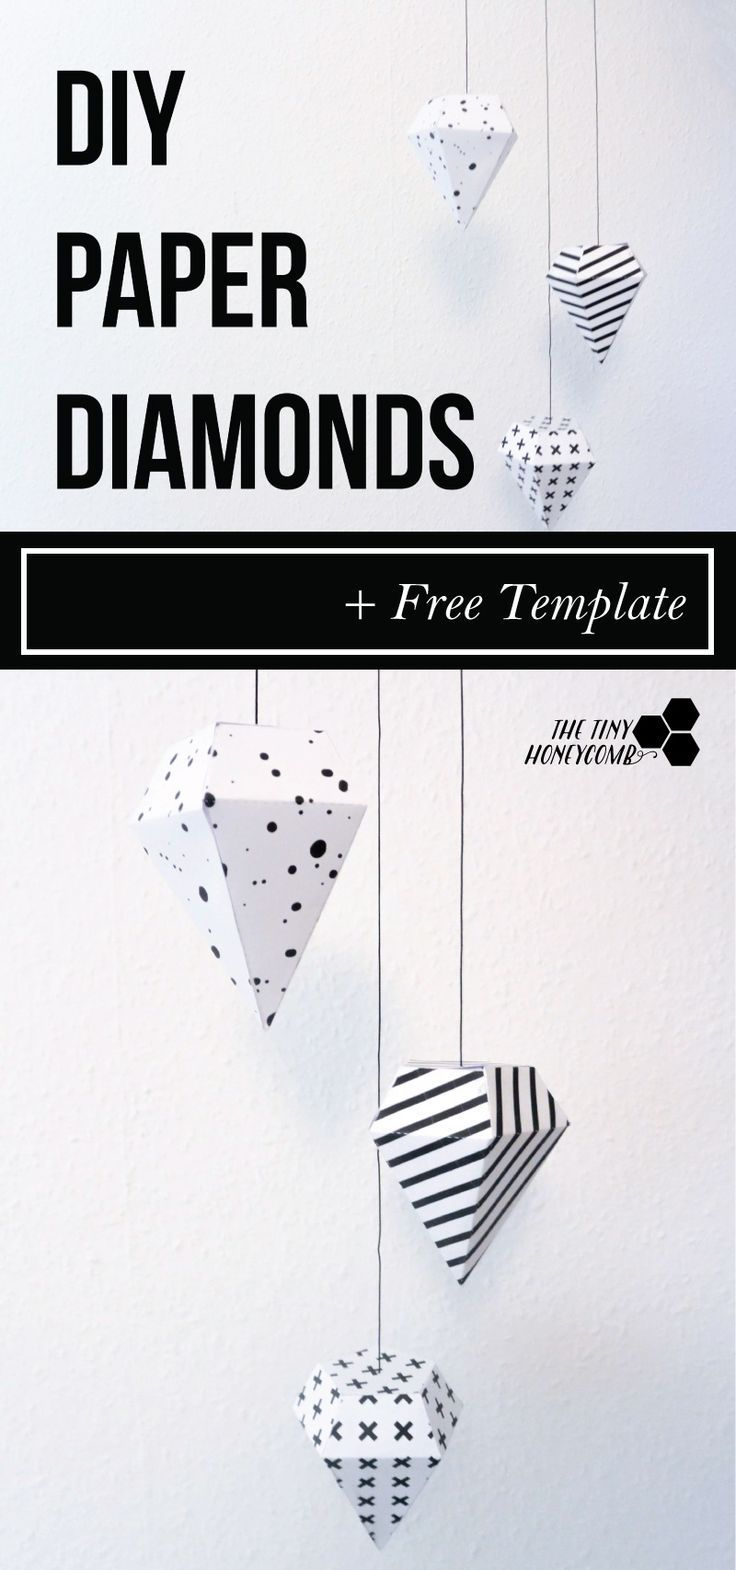 Best 25 diy paper crafts ideas on pinterest paper folding diy paper diamonds with free template solutioingenieria Gallery